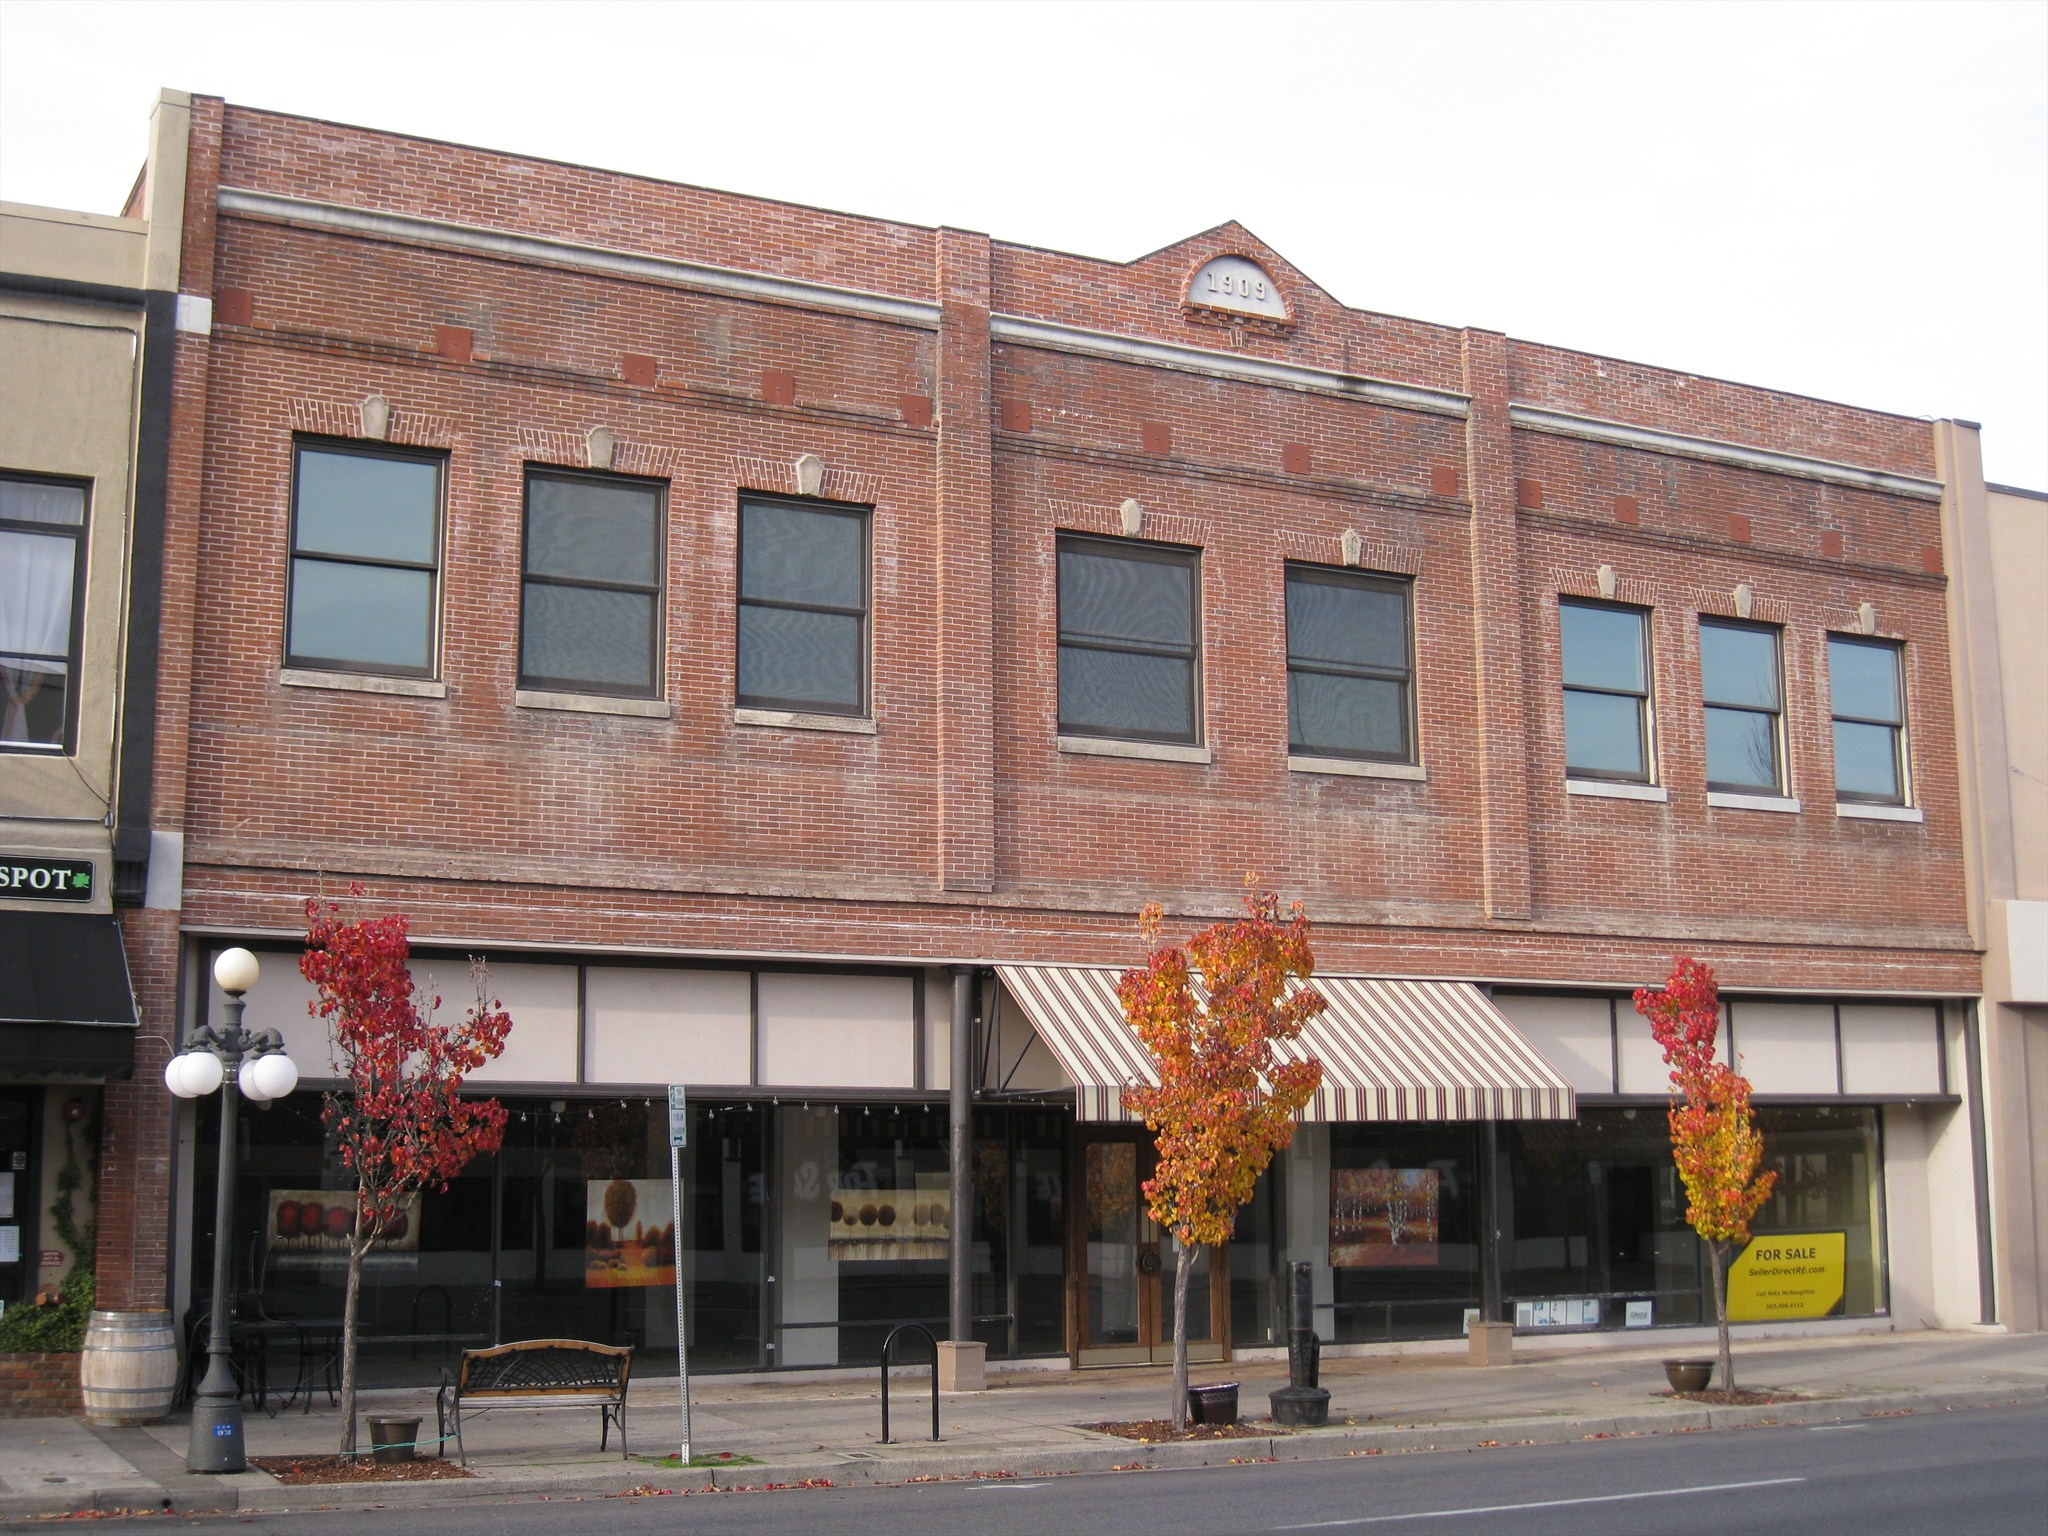 1909 Weeks And Orr Furniture Building Medford Oregon Dated Buildings And Cornerstones On